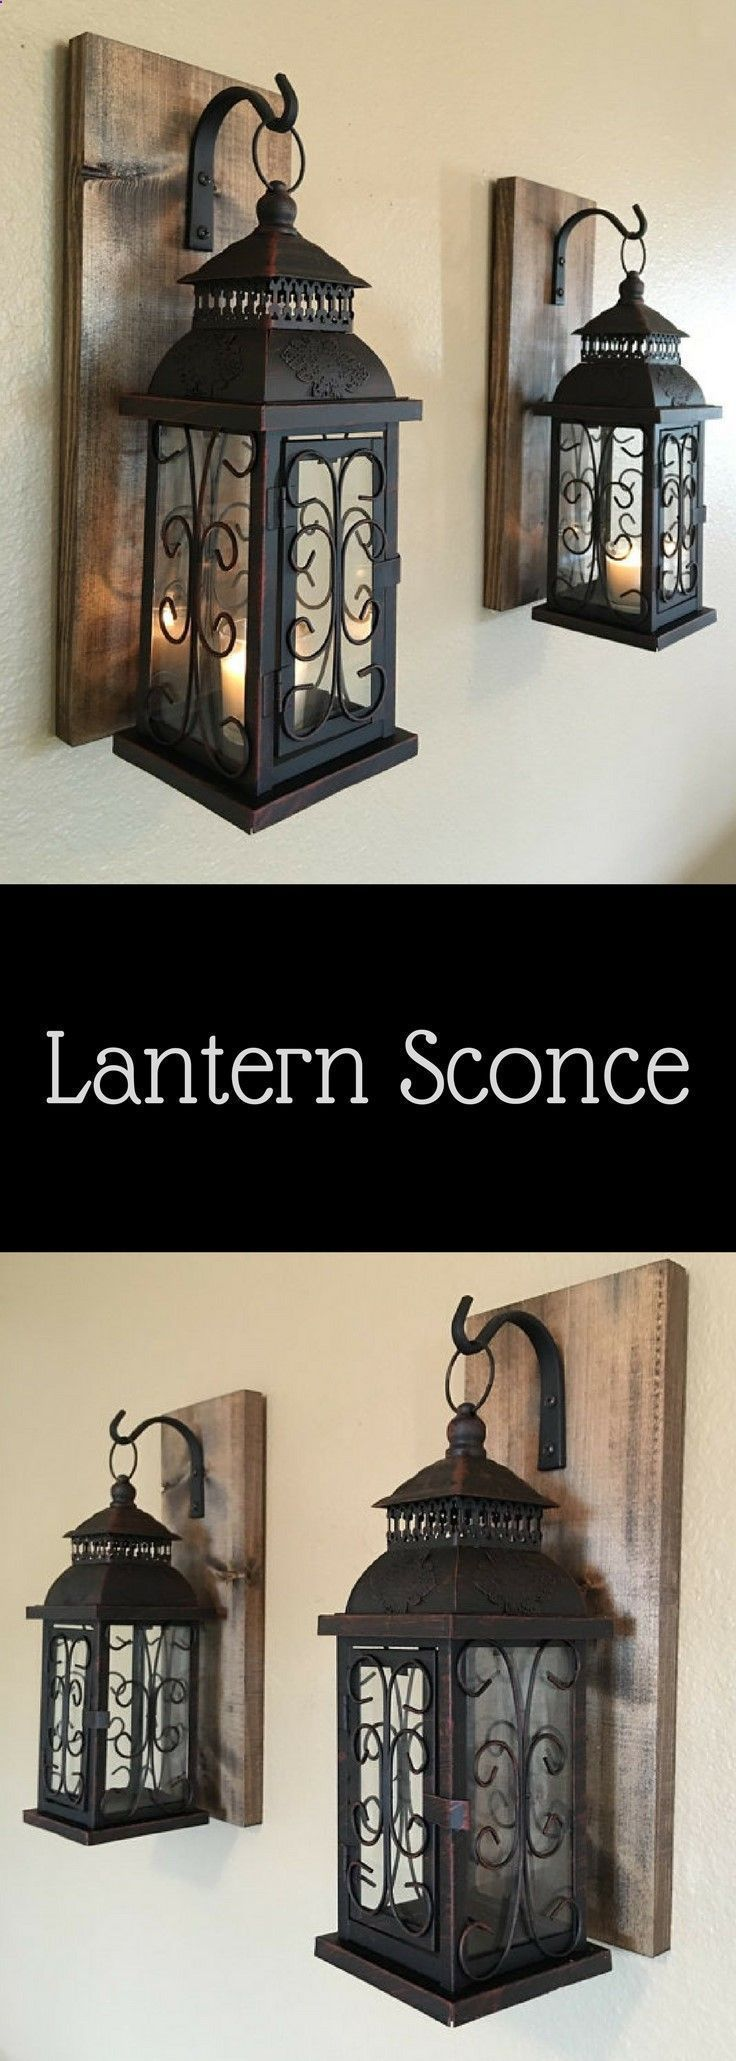 Lantern pair wall decor, wall sconces, bathroom decor, home and living, wrought iron hook, rustic wood boards, bedroom decor, rustic home décor, diy, country, living room, farmhouse, on a budget, modern, ideas, cabin, kitchen, vintage, bedroom, bathroom #homedecorideaslivingroom #decoratingbathrooms